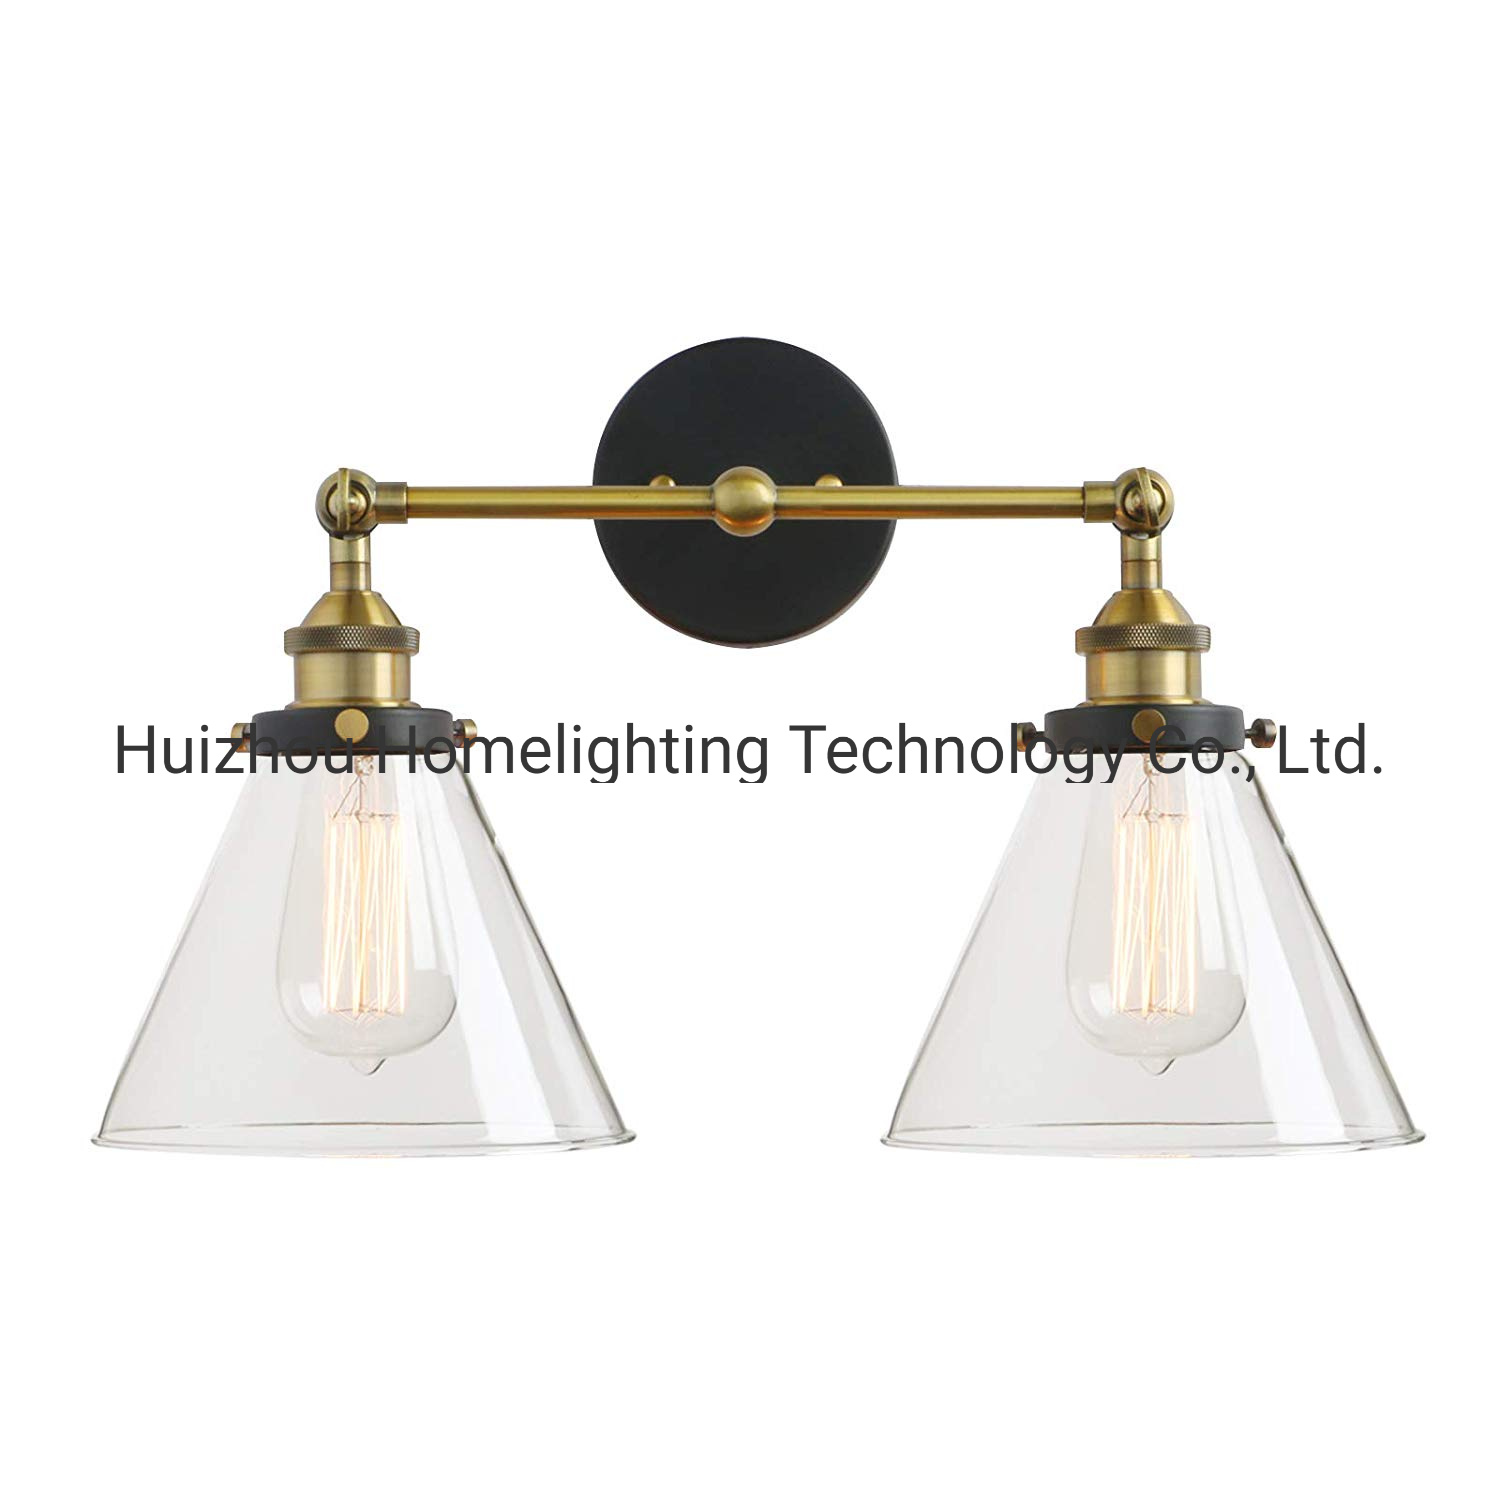 Image of: China Jlw G901 Double Sconce Vintage Industrial Antique 2 Lights Wall Sconces With Funnel Flared Glass Clear Glass Shade China Glass Wall Lamp Wall Lamps